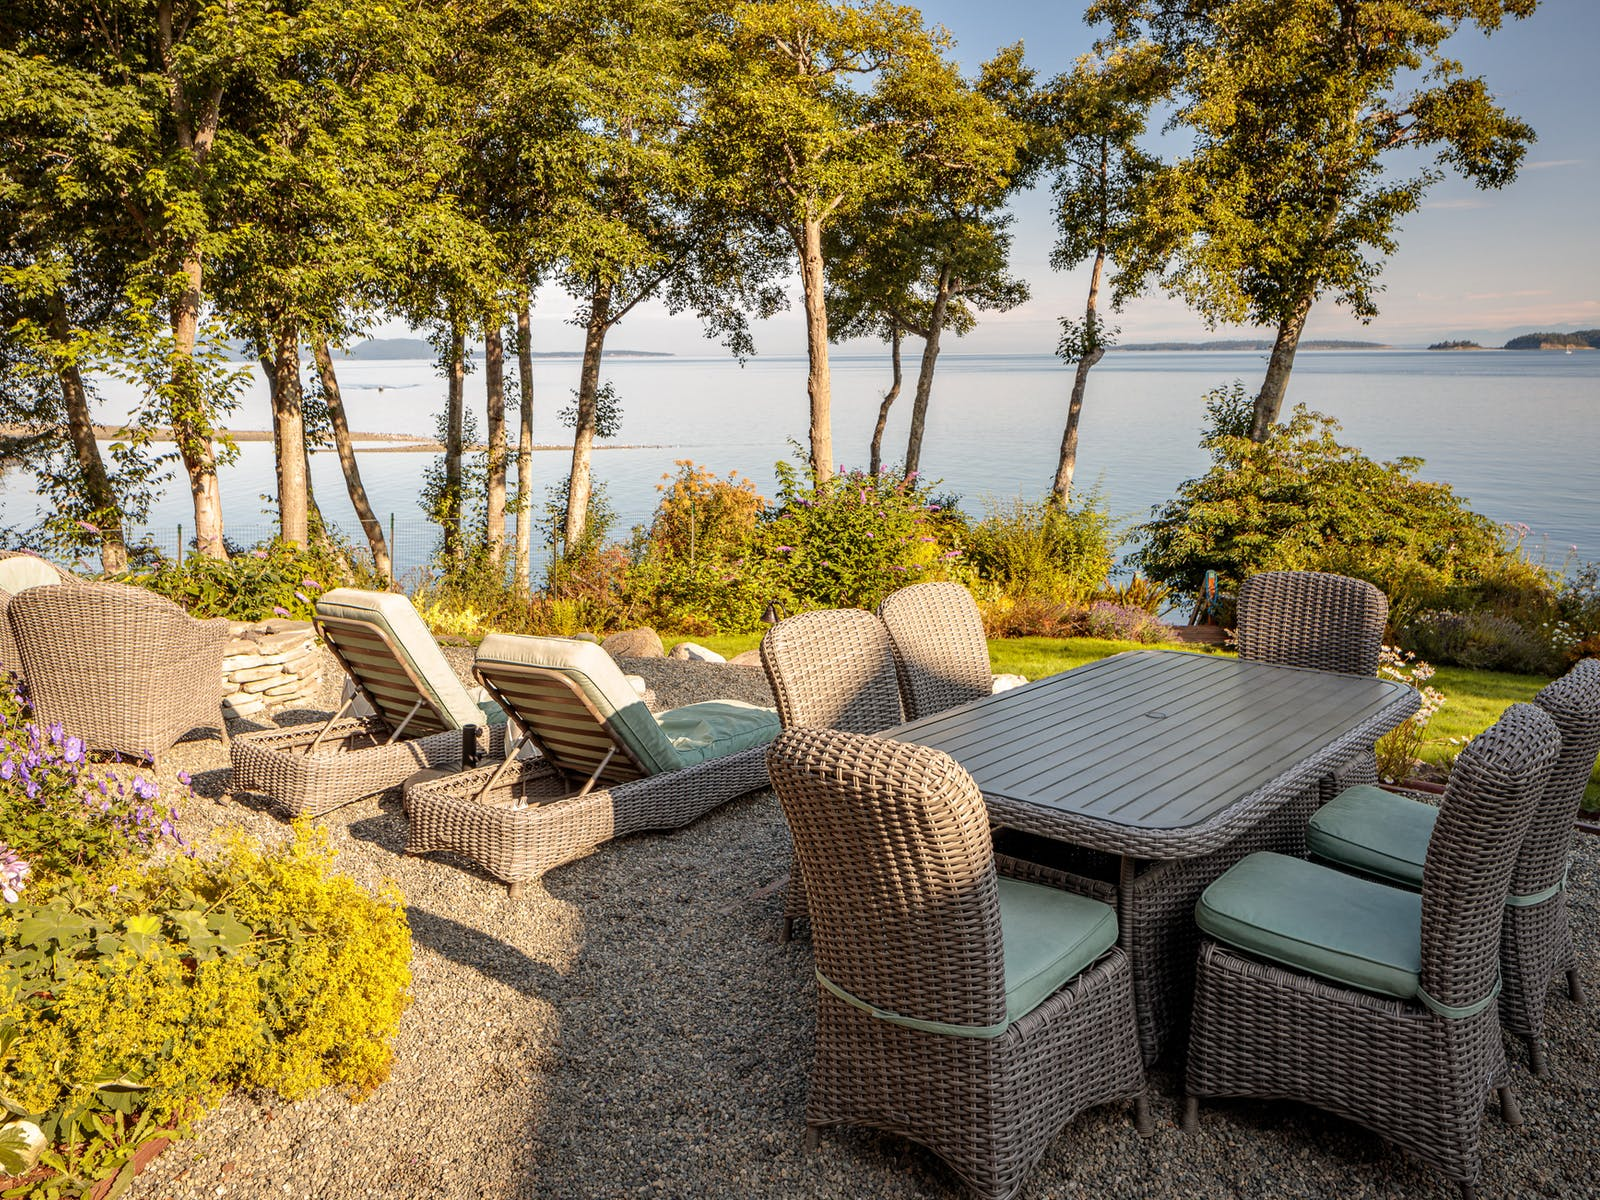 outdoor furniture with views of the Sound in Eastsound, WA